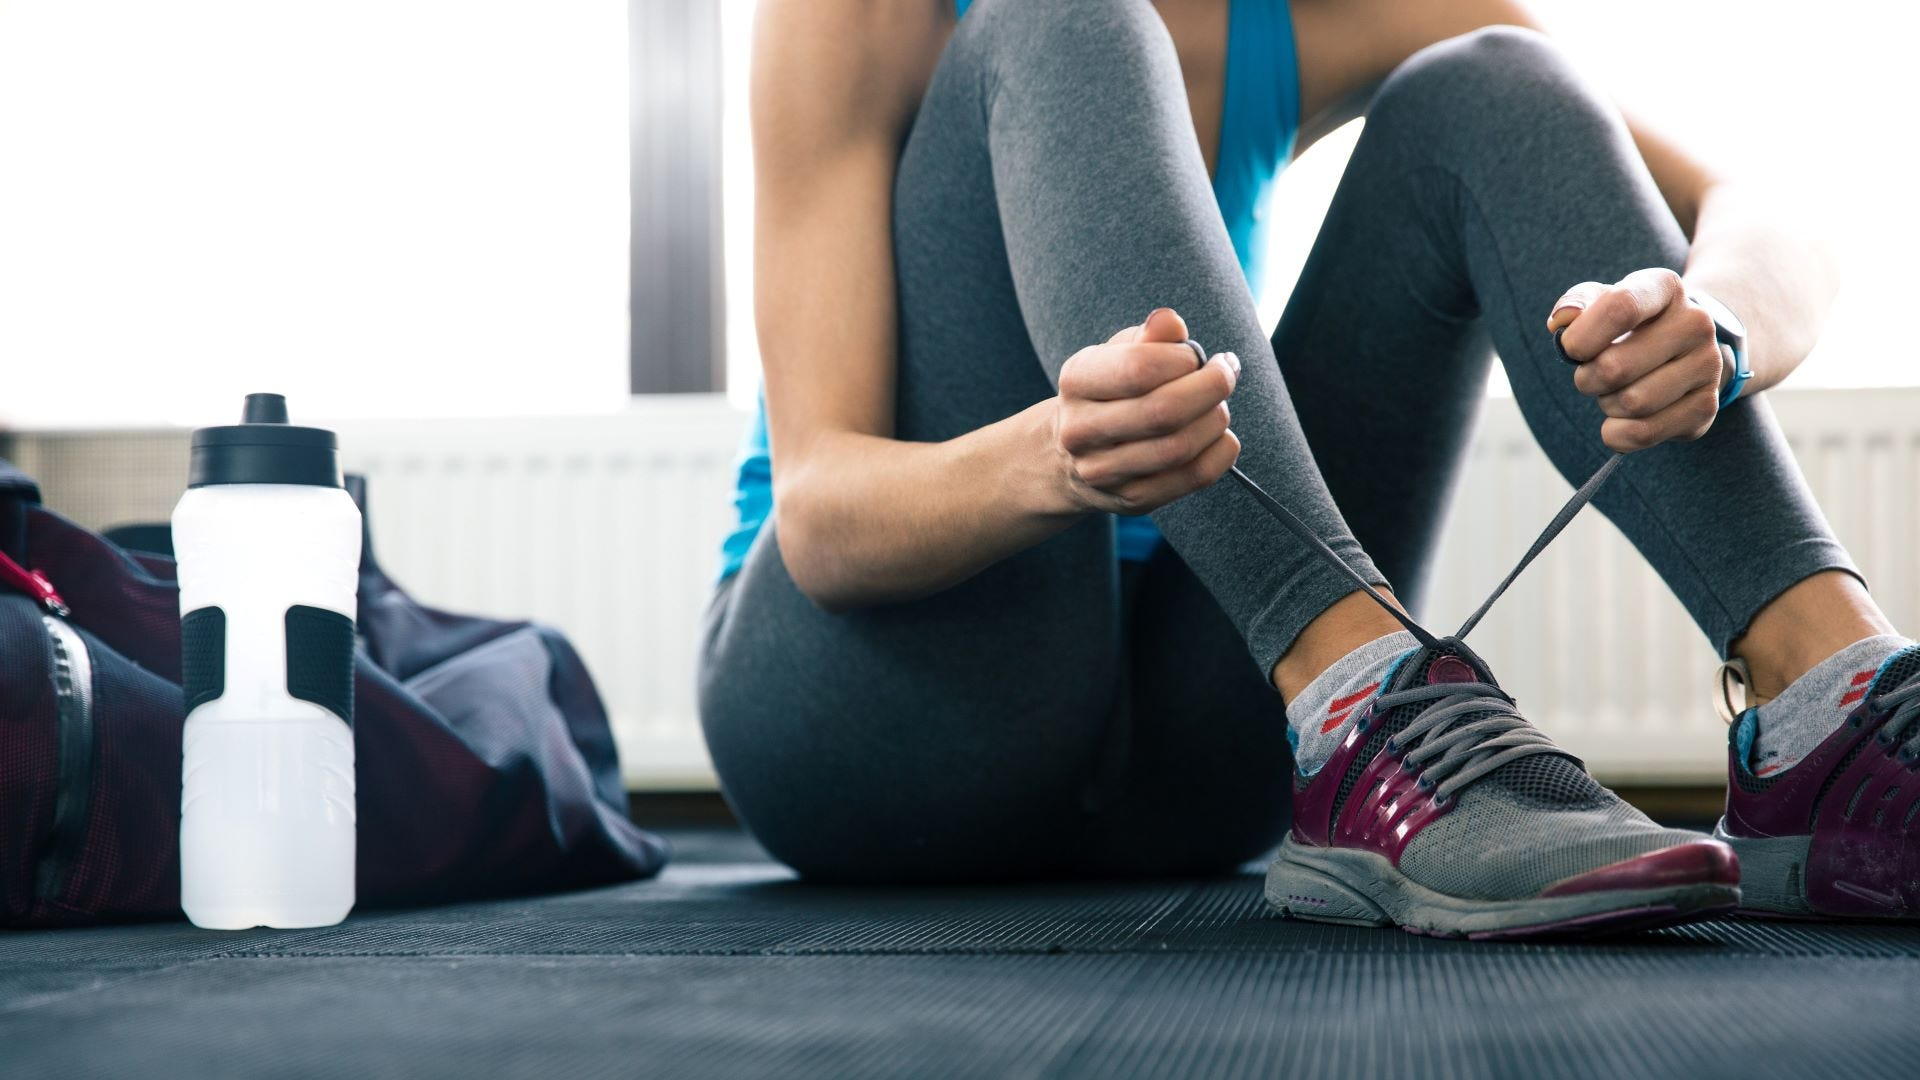 A woman tying the shoelaces on her cross-training shoes in a gym.